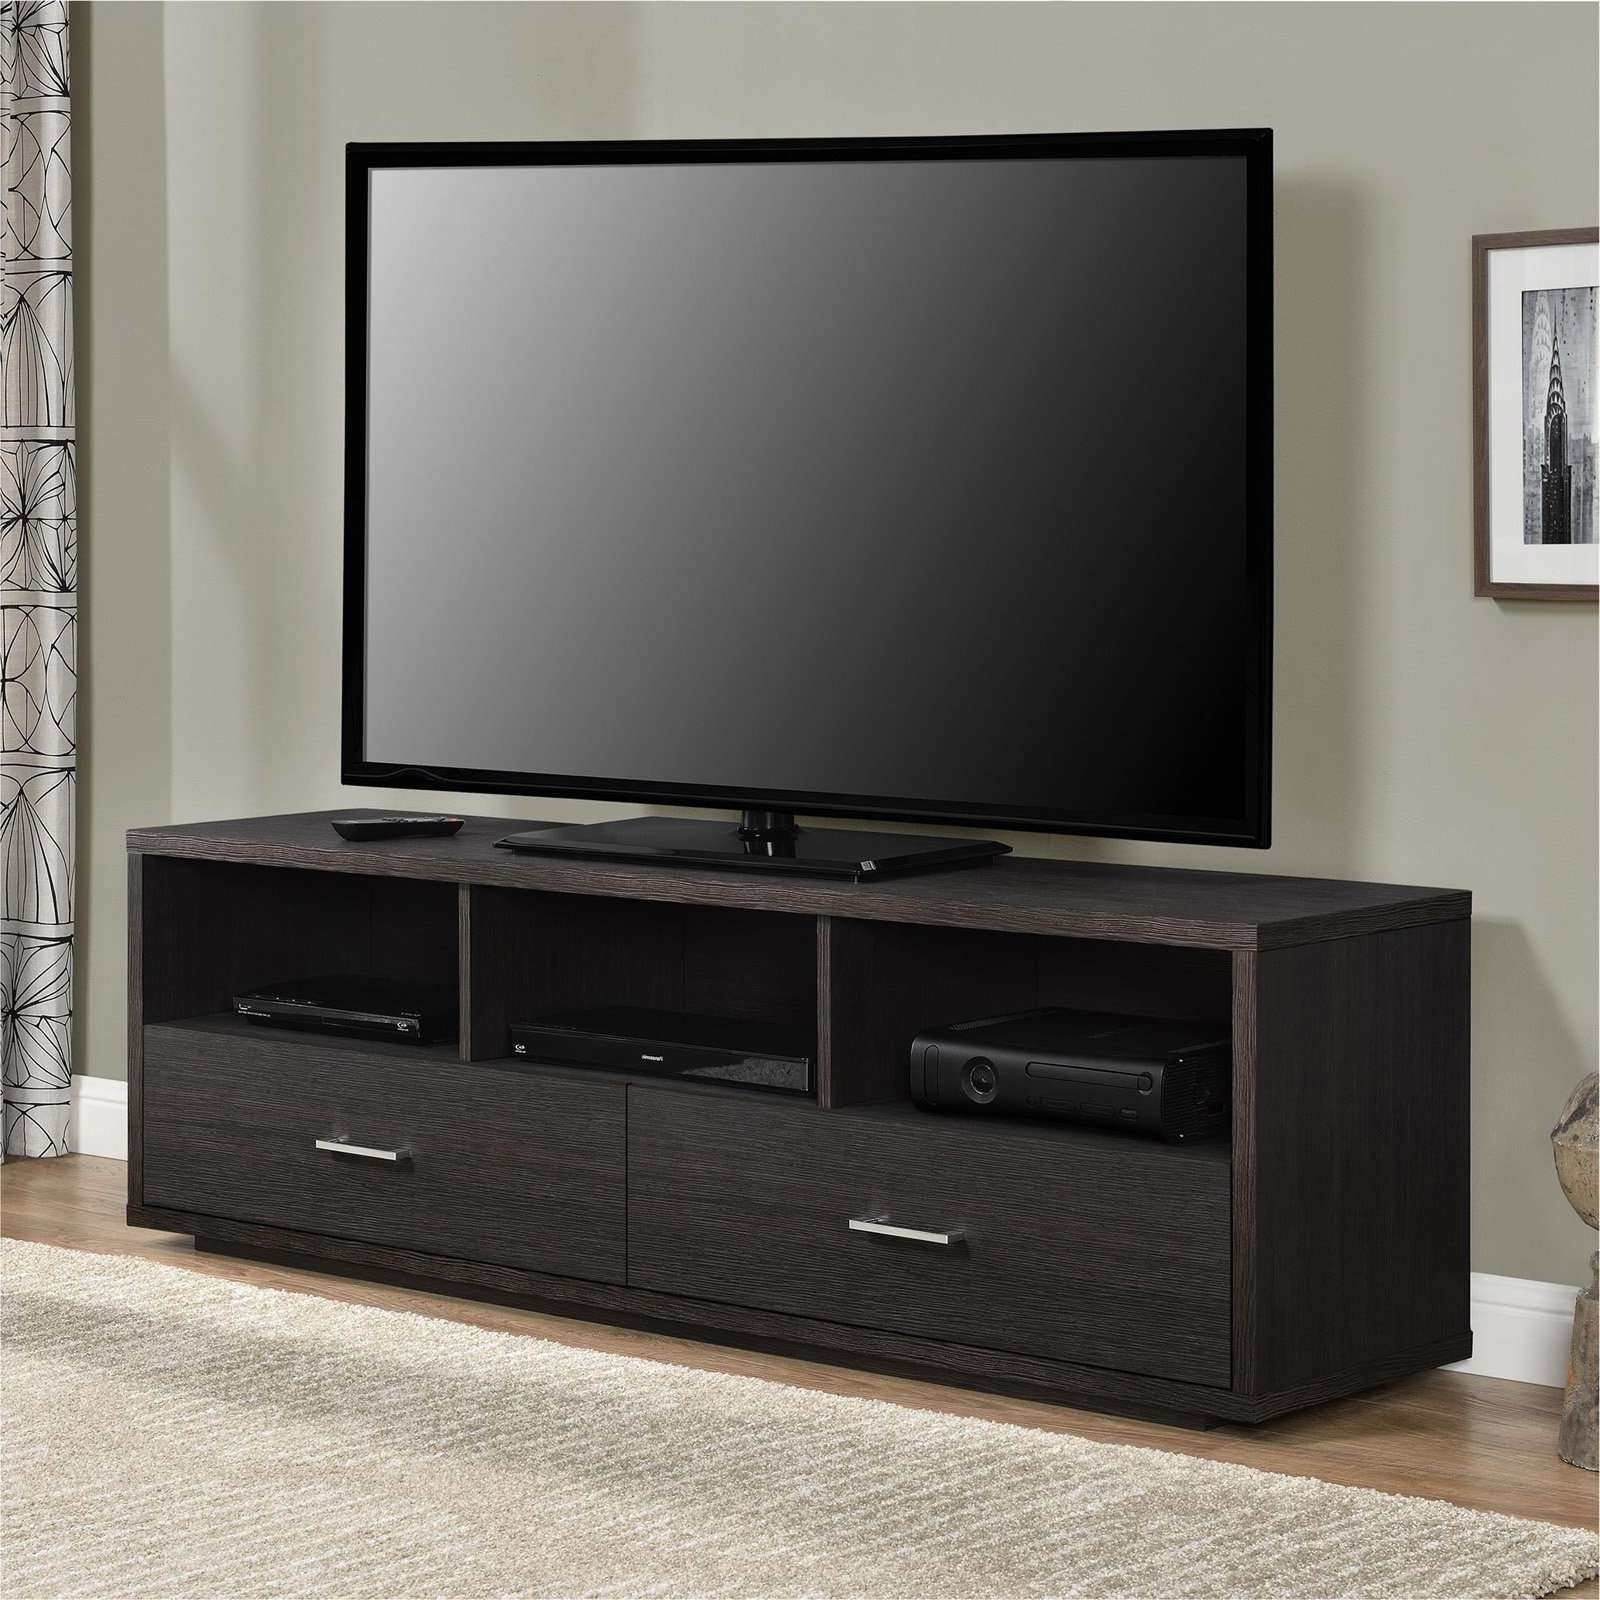 "Ameriwood Home Clark Tv Stand For Tvs Up To 70"", Espresso Within Tv Stands For 70 Inch Tvs (View 3 of 15)"